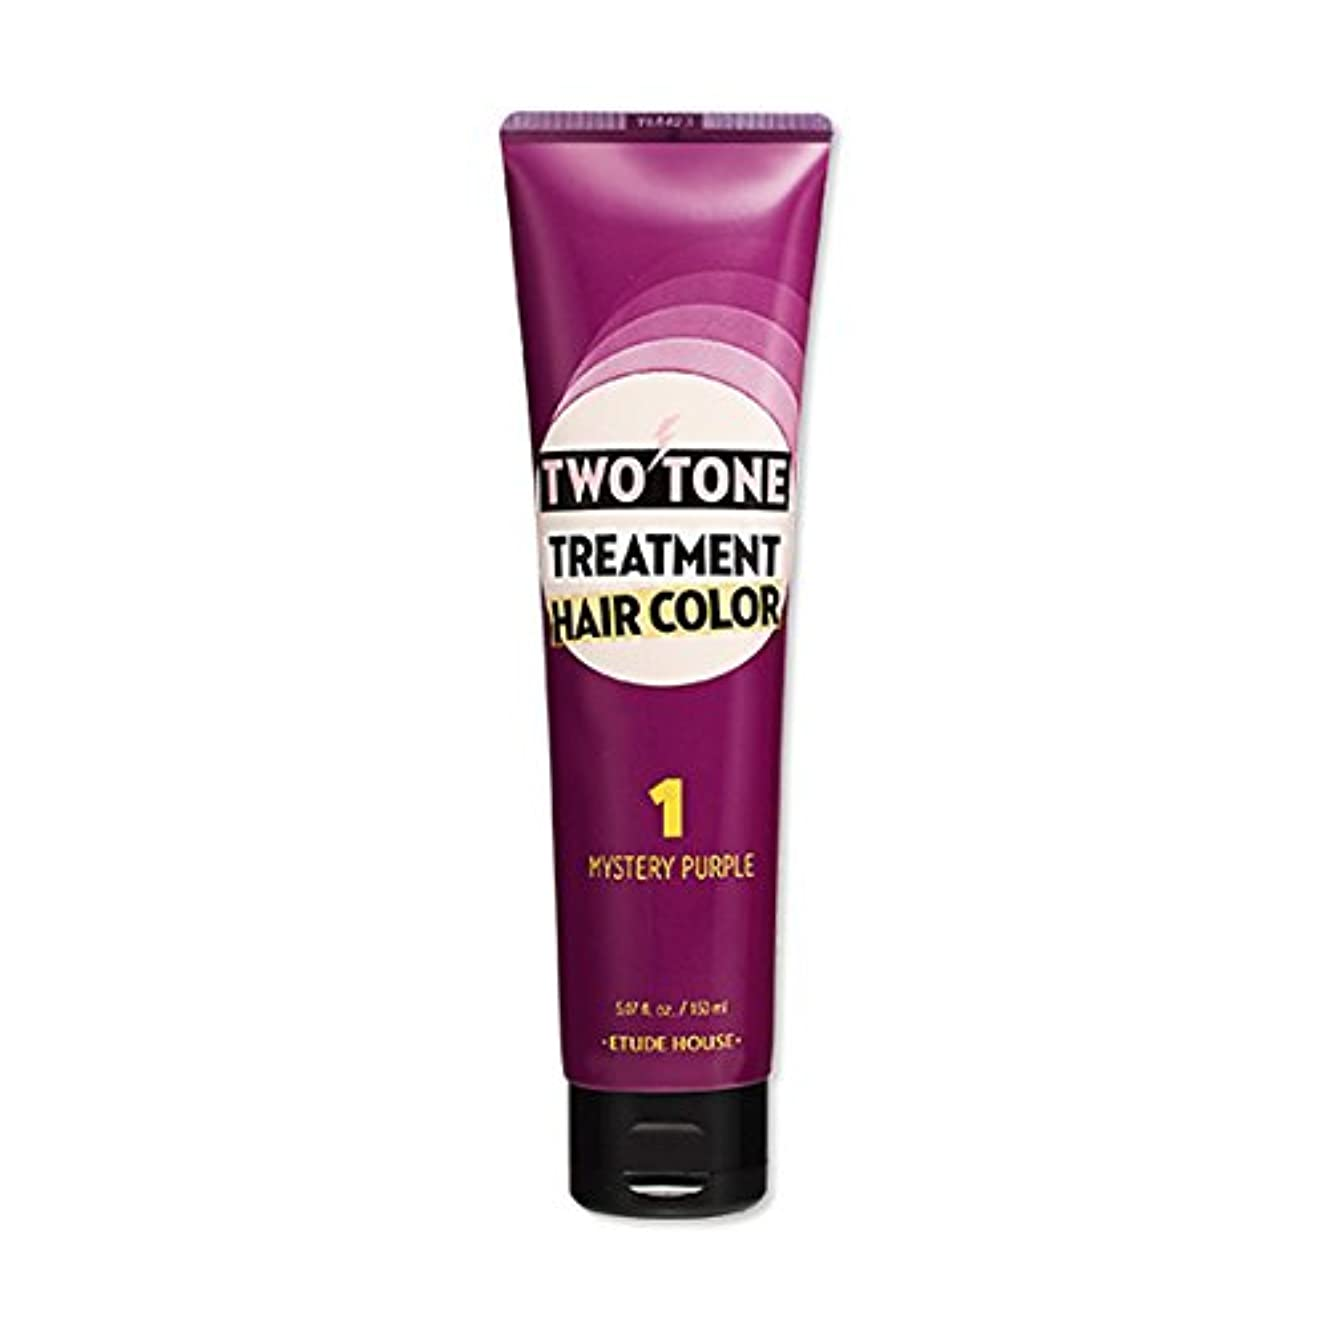 ETUDE HOUSE Two Tone Treatment Hair Color 1.MYSTERY PURPLE / エチュードハウス ツートントリートメントヘアカラー150ml (1.MYSTERY PURPLE)...